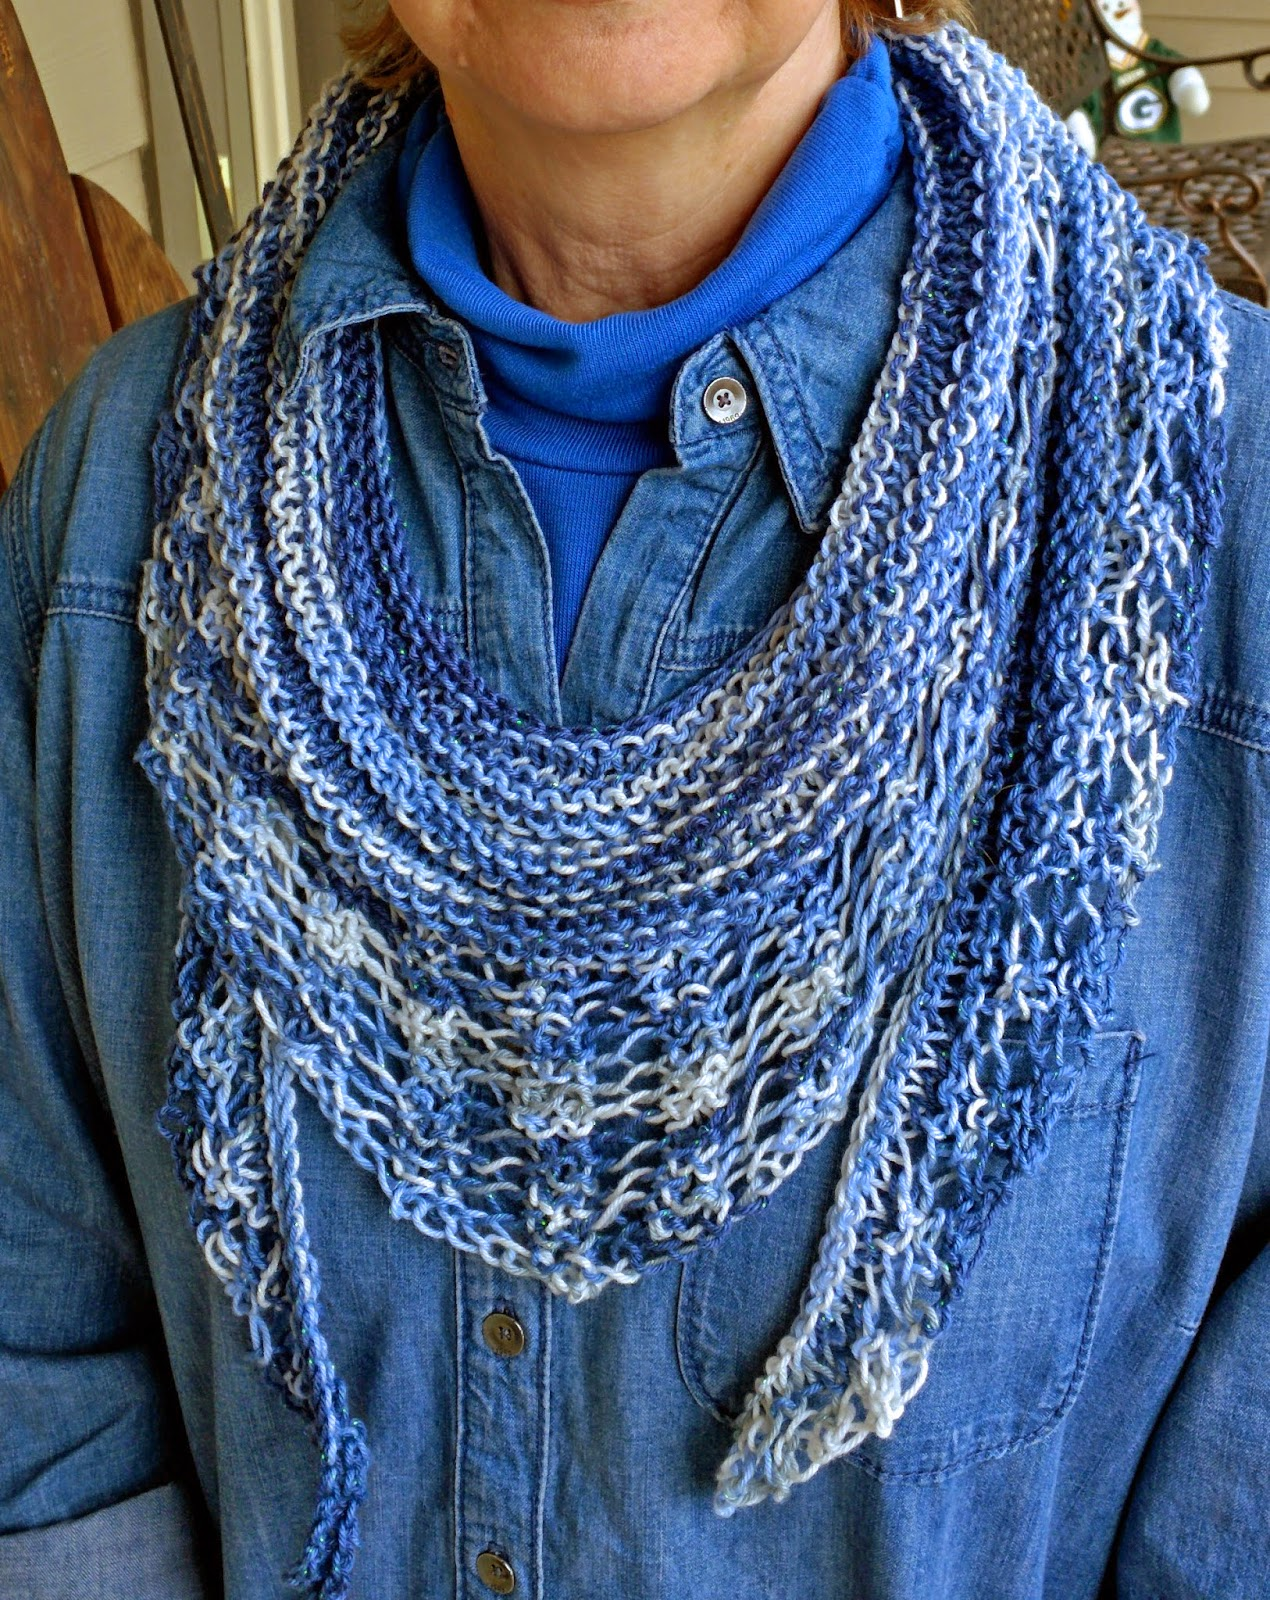 Knitting Pattern For Gallatin Scarf : Spinning Memories - Knitting Love: Light & Airy - The ...